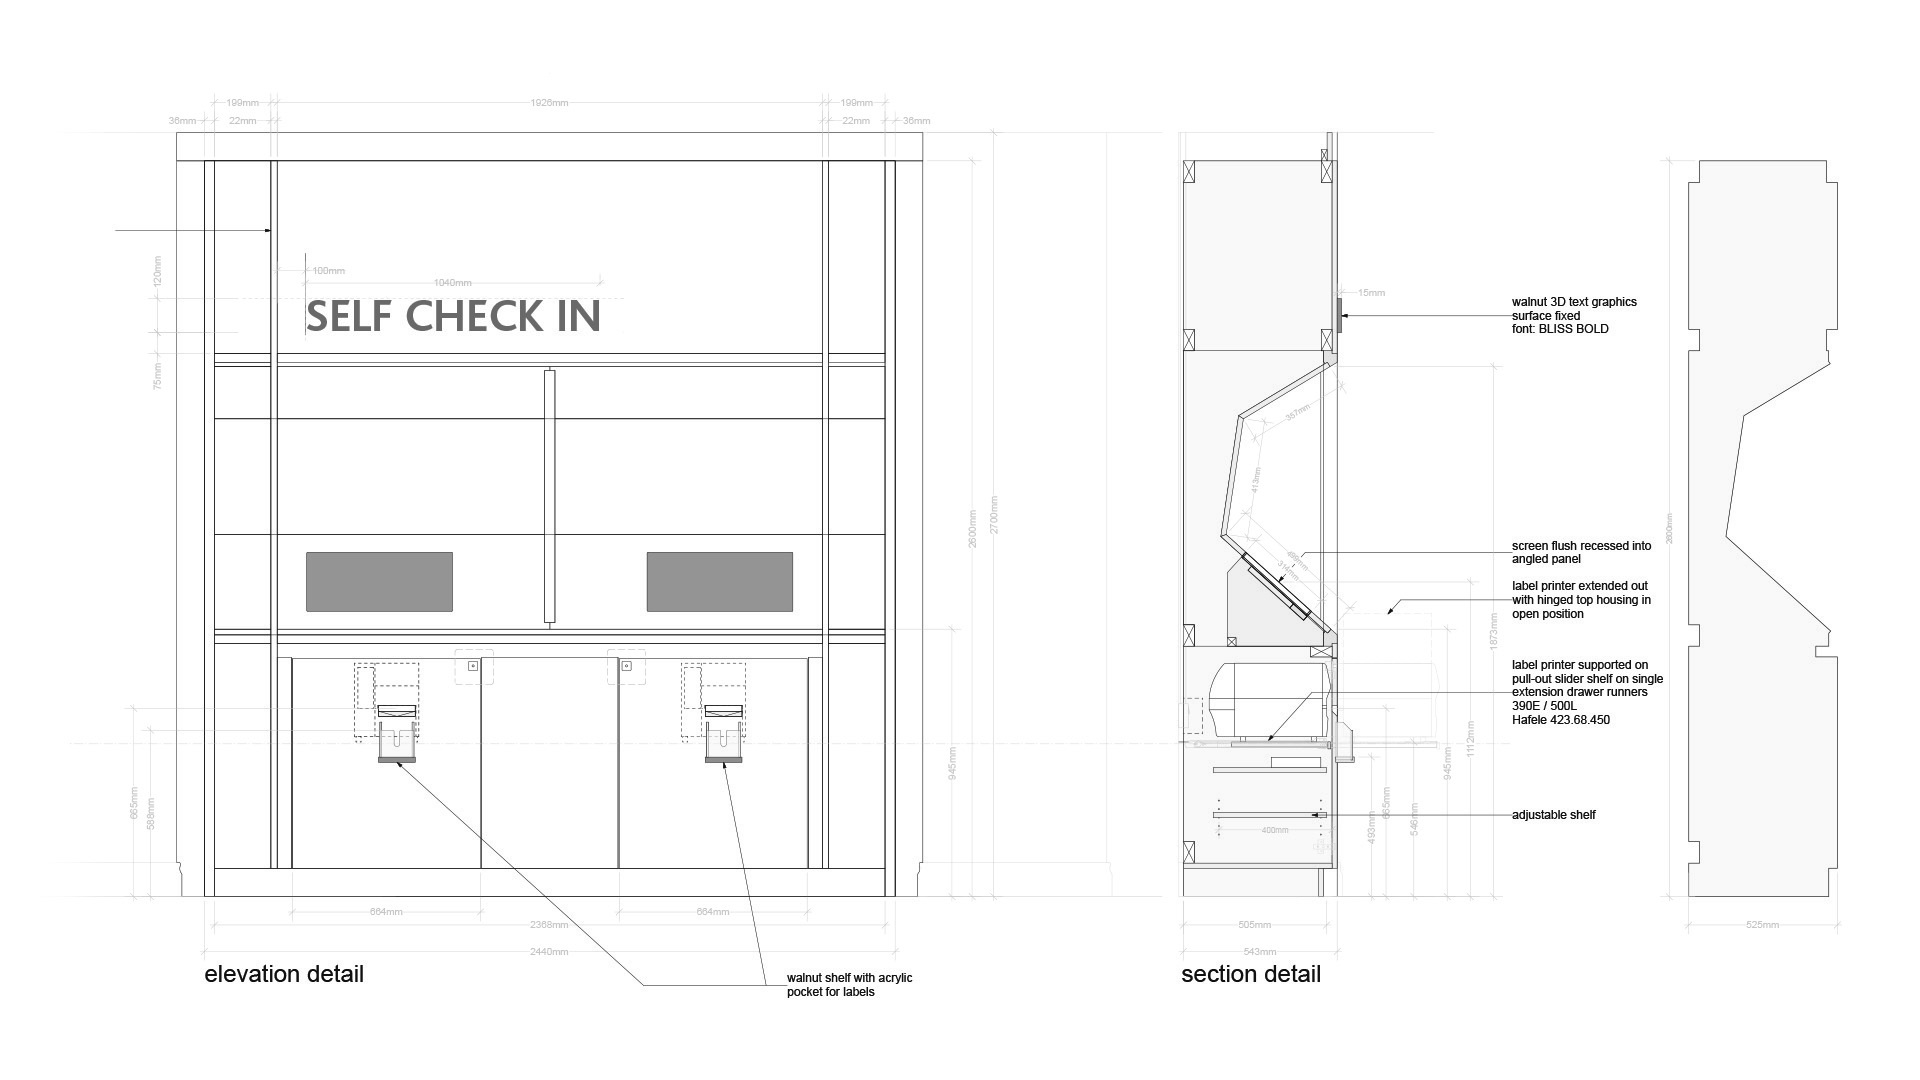 technial drawings for Ulster Clinic Belfast